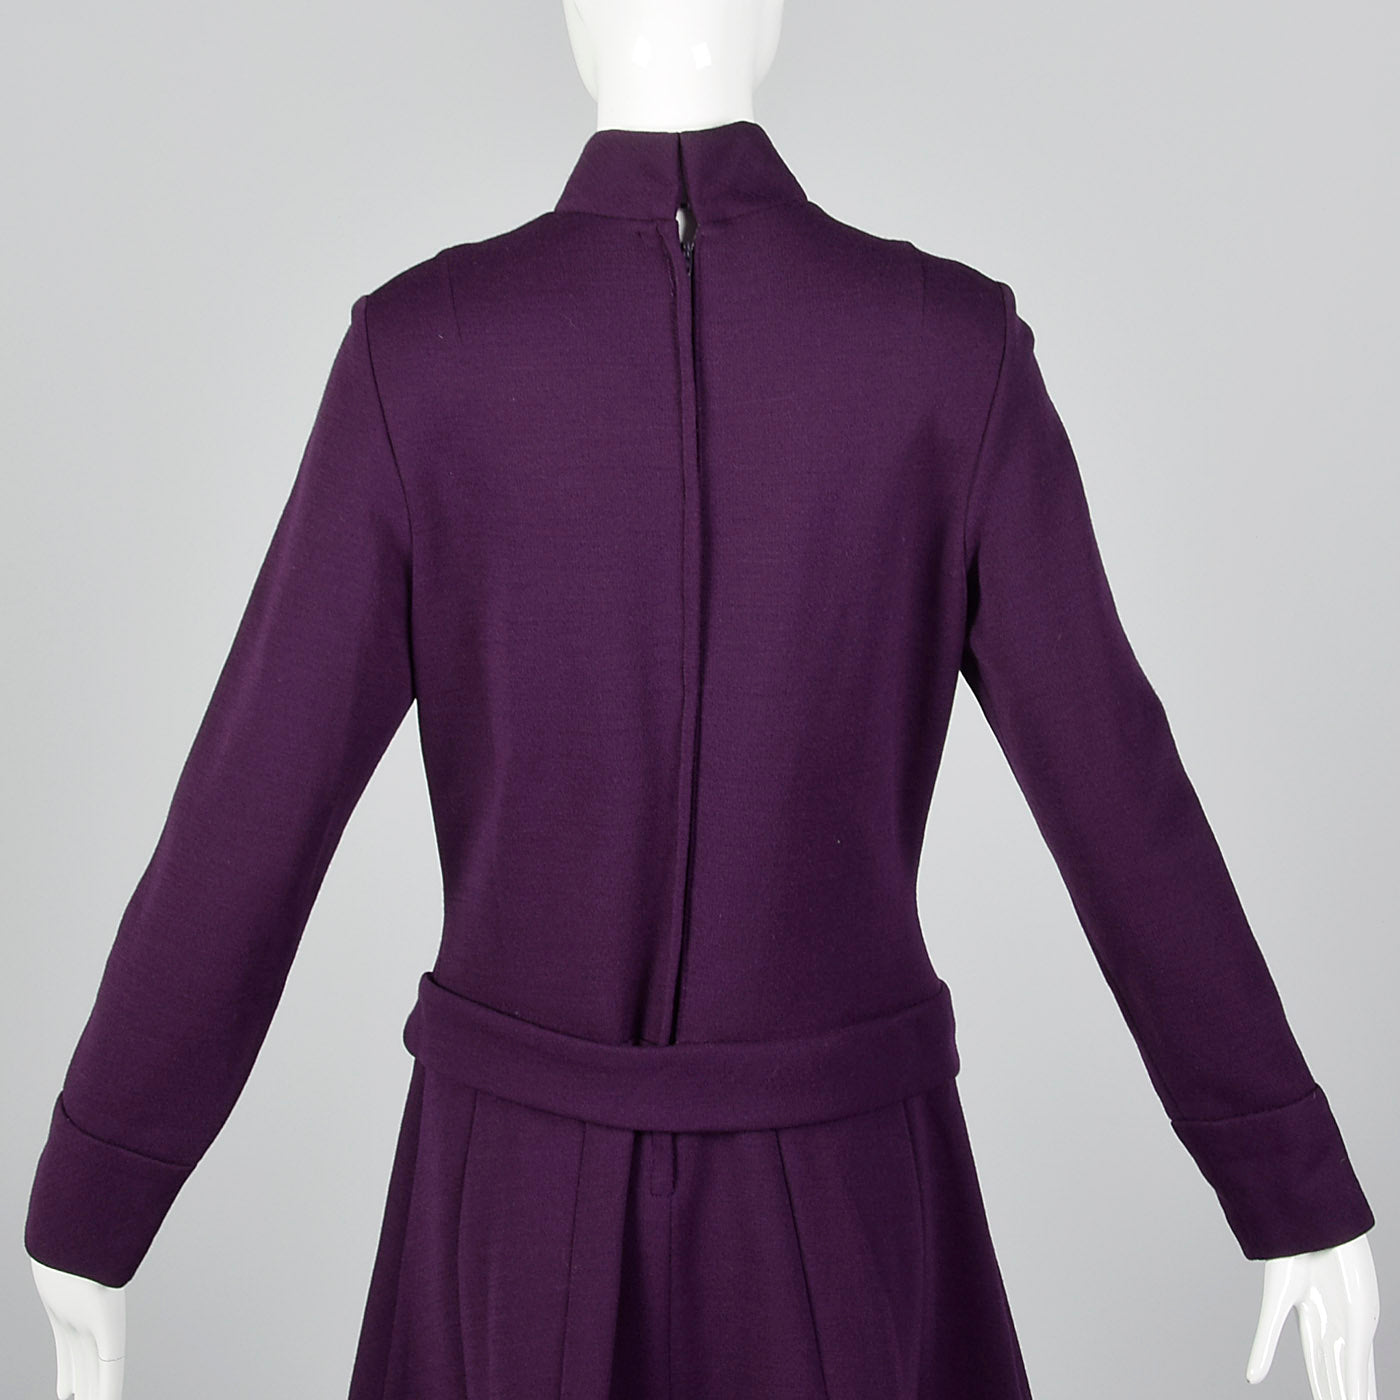 1960s Purple Knit Dress with Dropped Waist